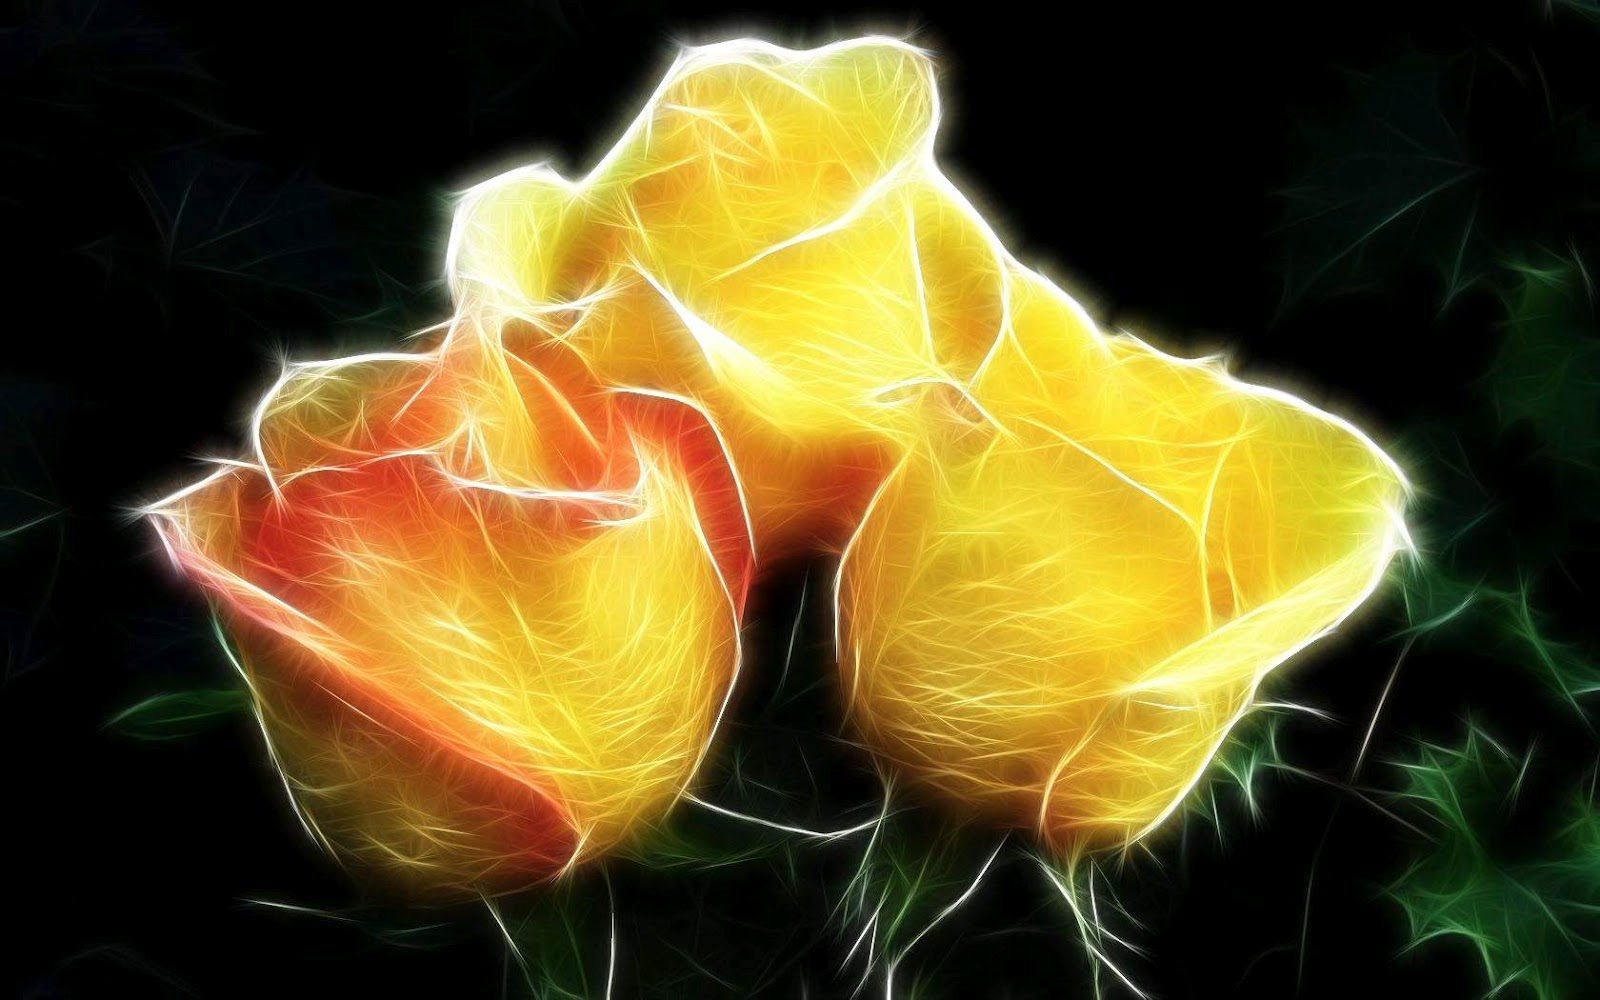 Black and White Wallpapers: Artistic Yellow Roses Wallpaper